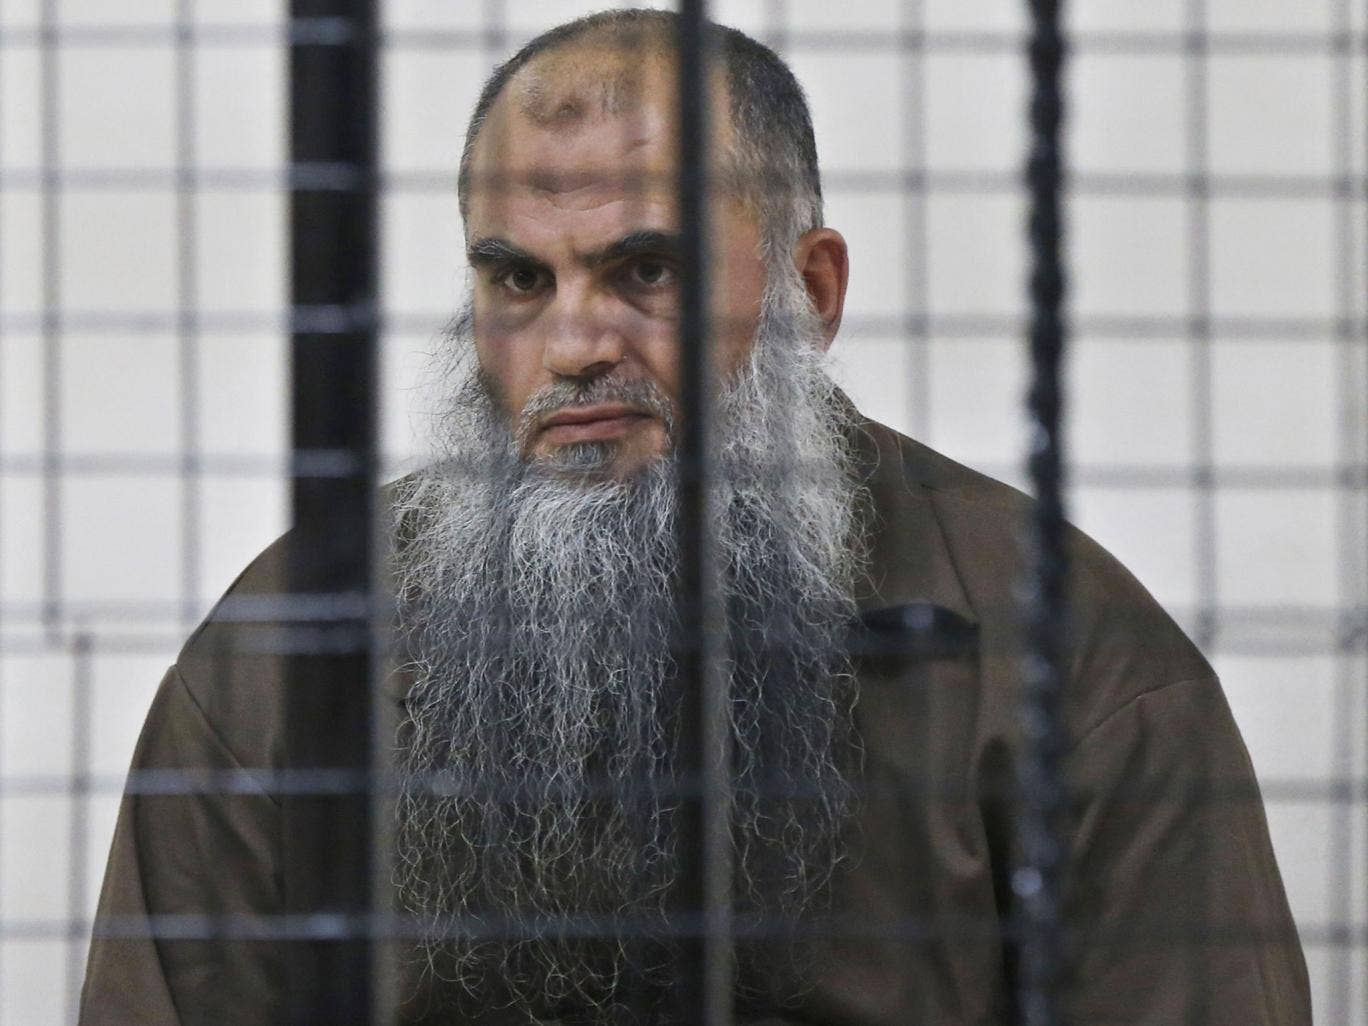 Radical Muslim cleric Abu Qatada looks on from behind bars at the State Security Court in Amman